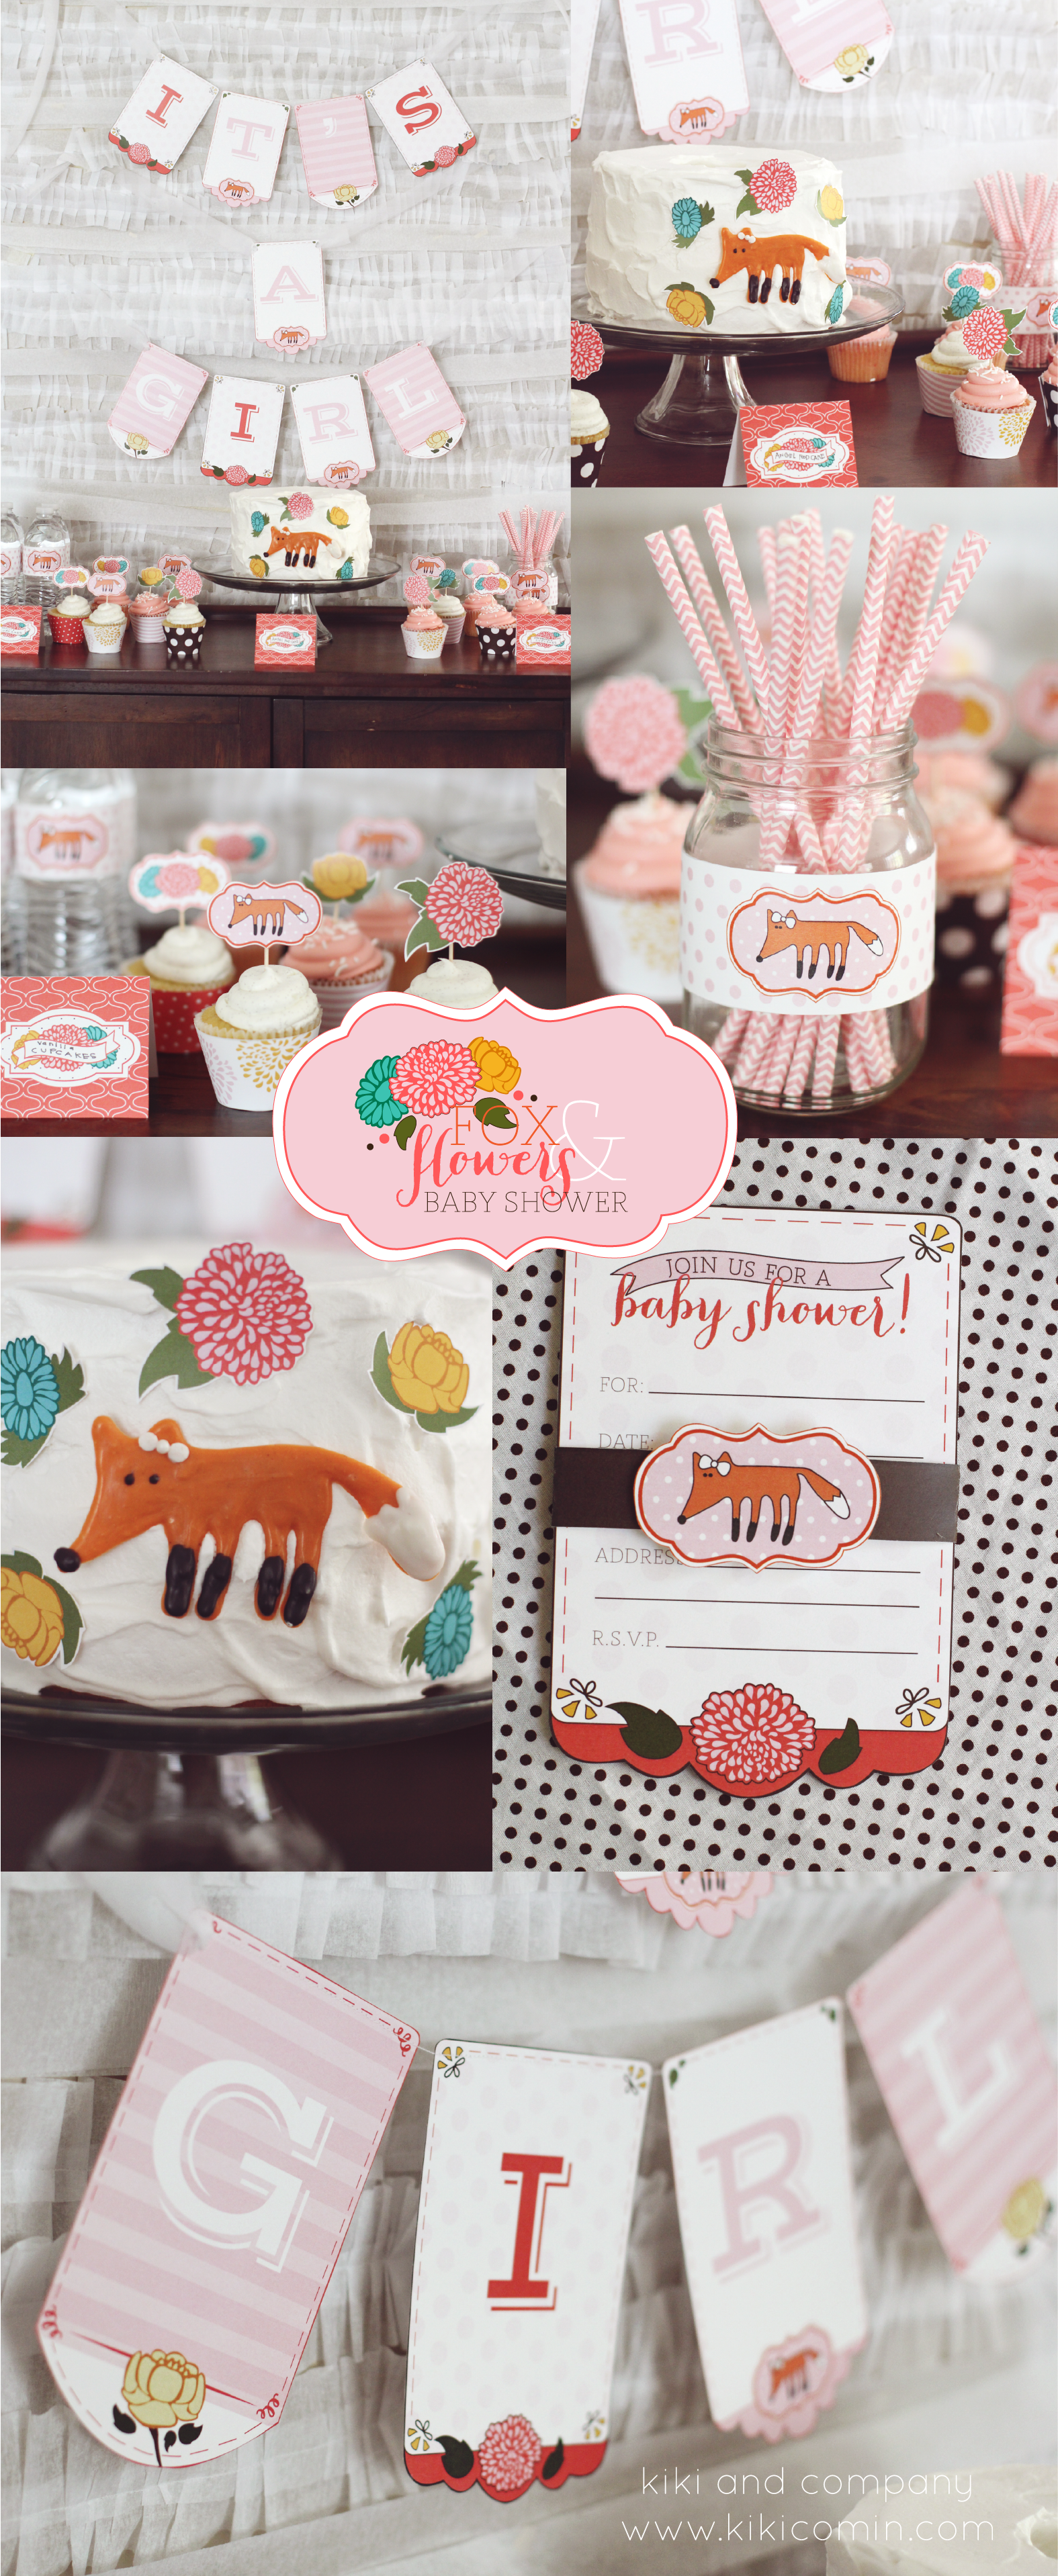 Foxes And Flowers Baby Shower Kiki Amp Company